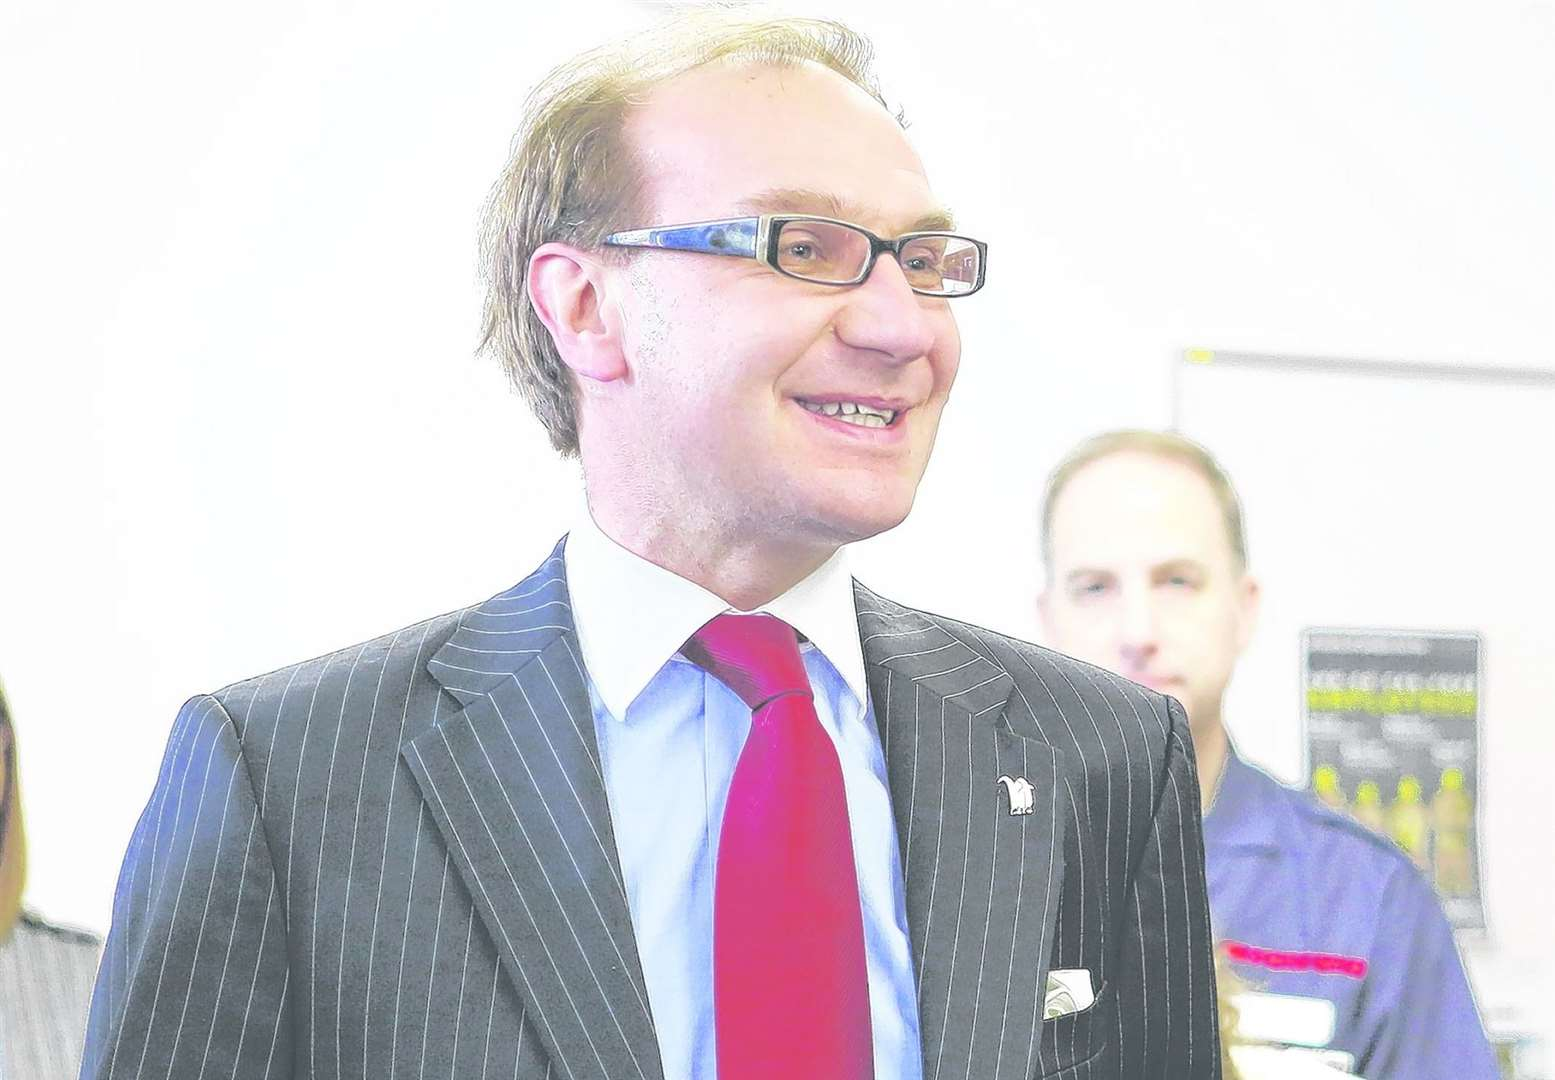 Hadlow Group deputy principal and deputy chief executive Mark Lumsdon-Taylor was also suspended